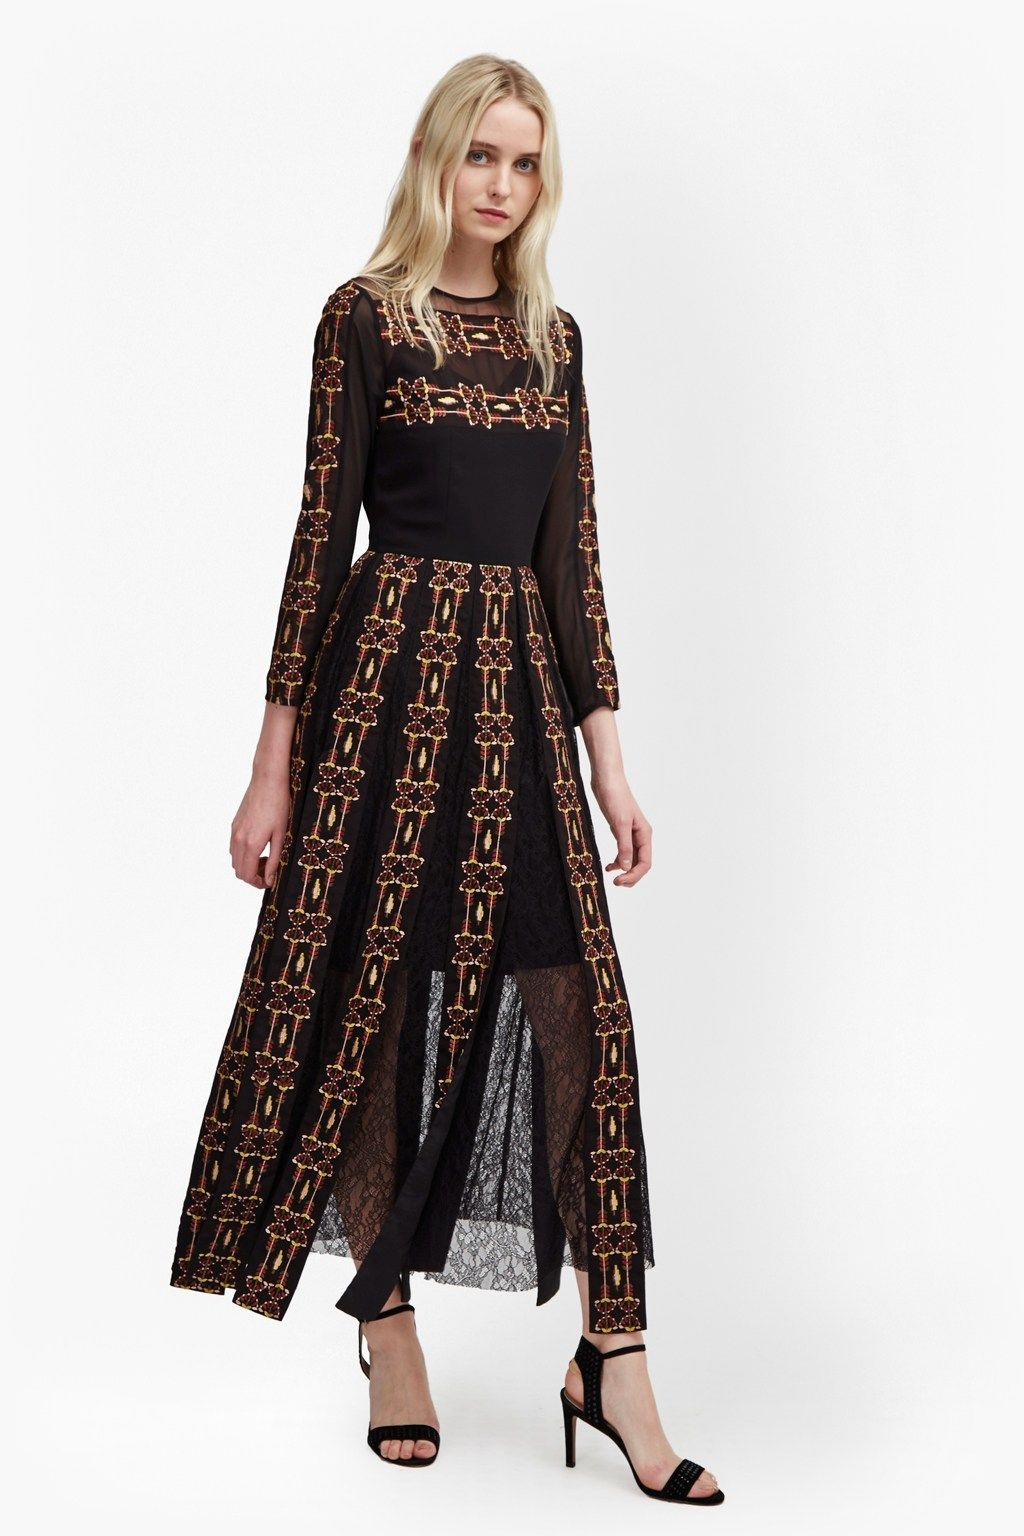 Wedding day guest dresses  What to wear to a winter wedding  Winter wedding guests Winter